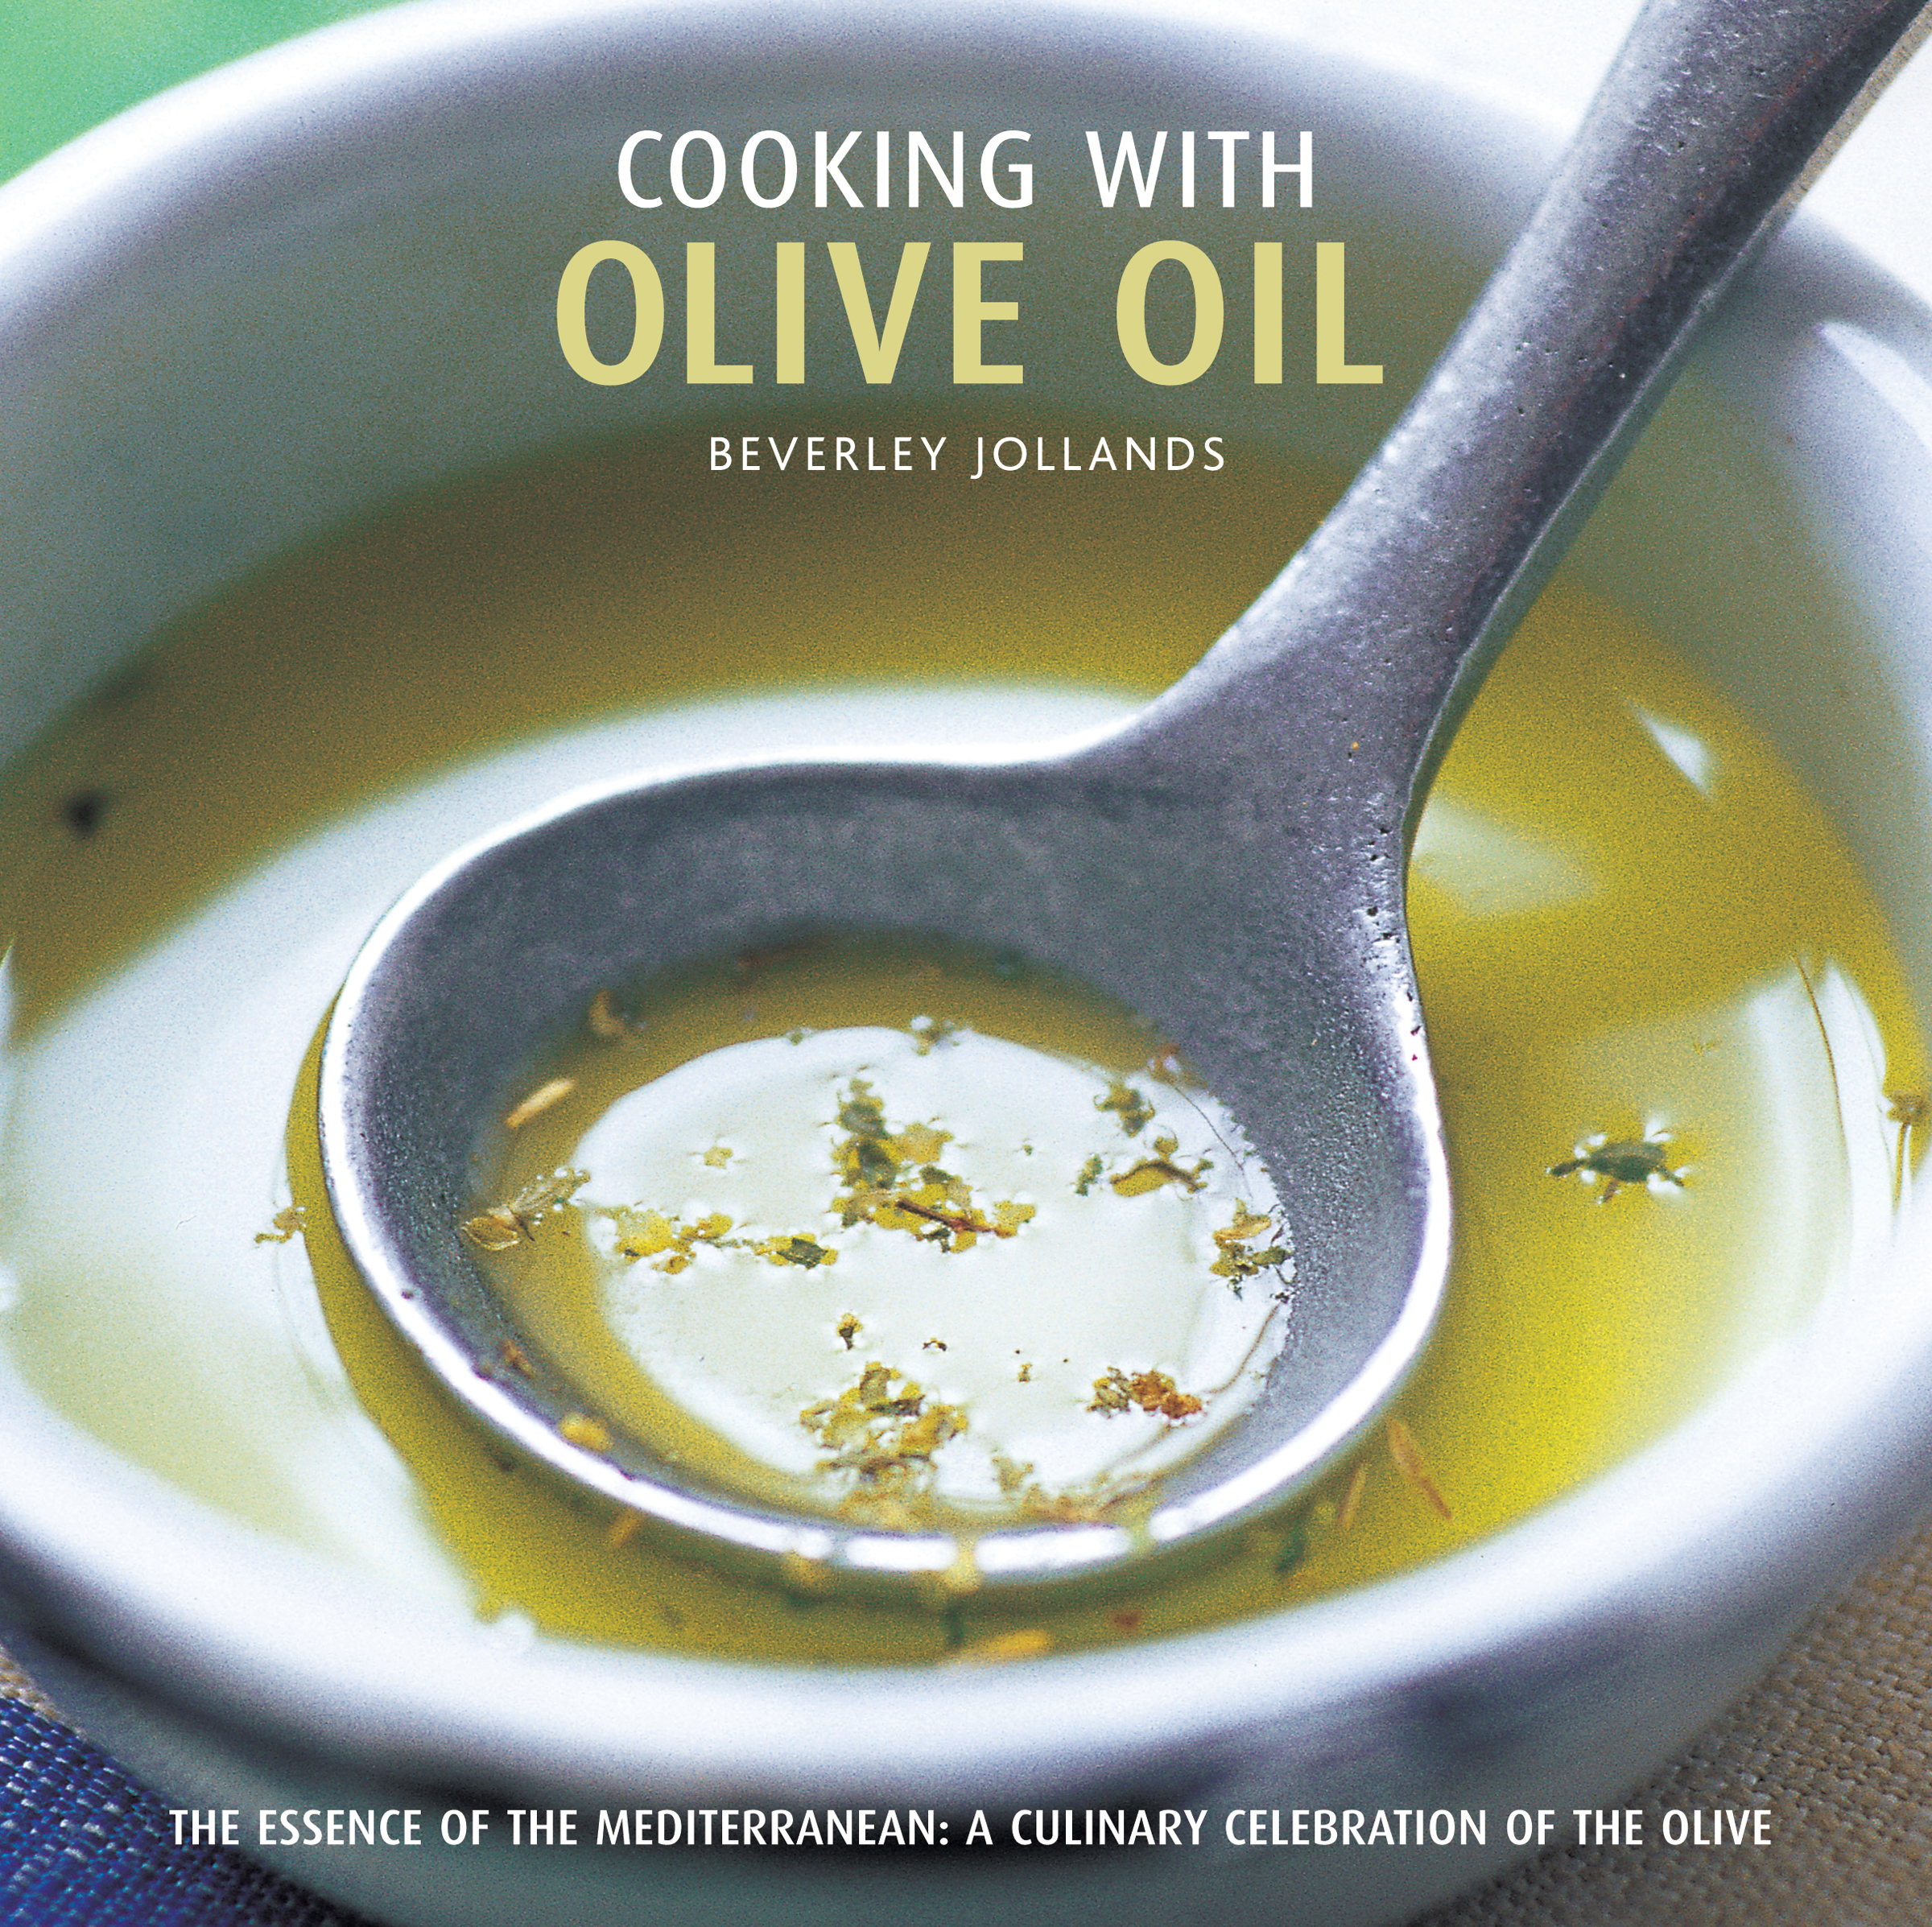 Cooking with Olive Oil The Essence of the Mediterranean: a Culinary Celebration of the Olive